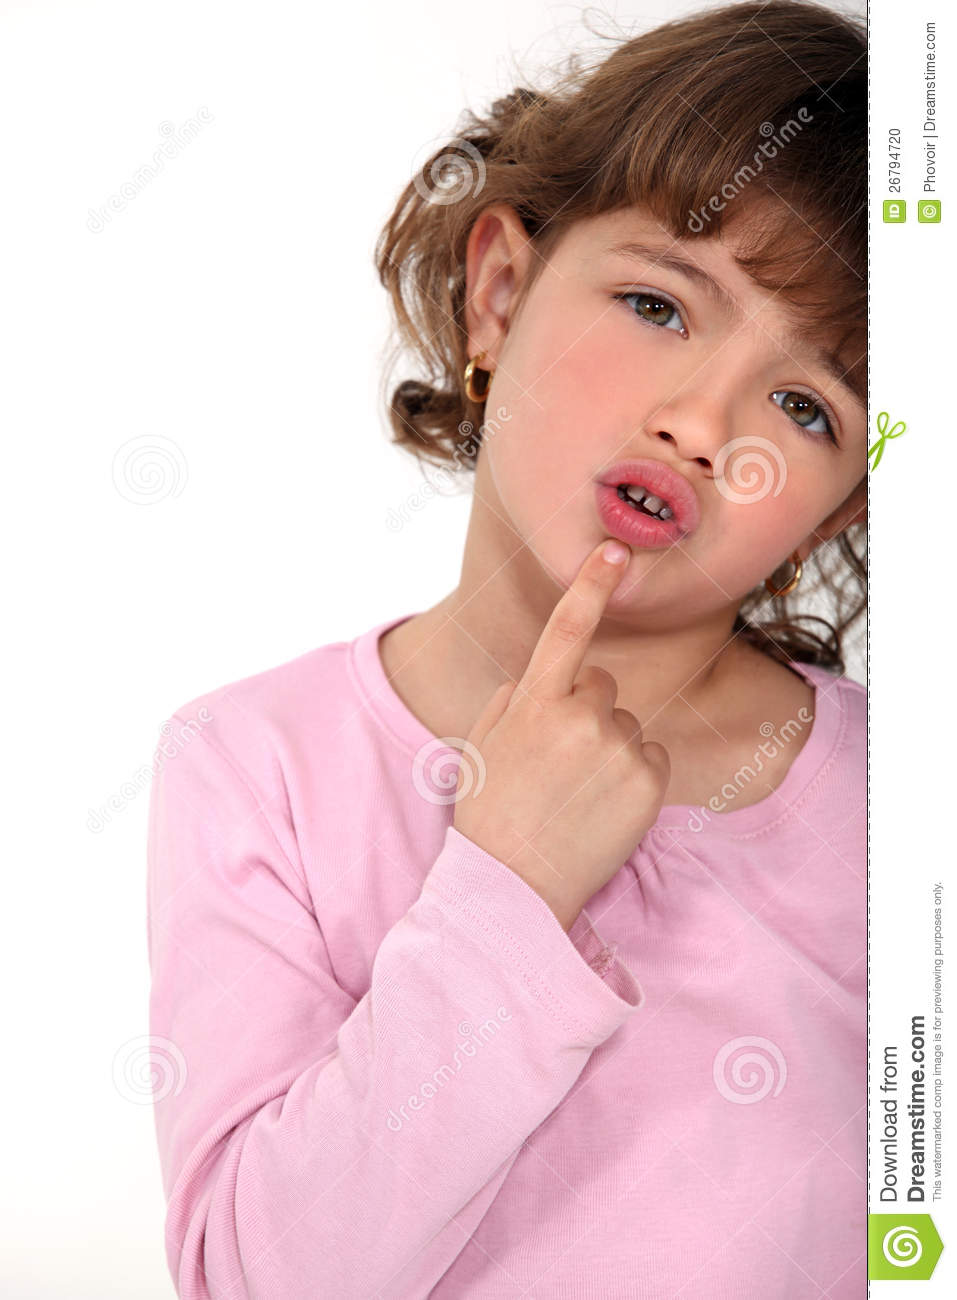 Young Girl Touching Her Chin Stock Photo - Image: 26794720